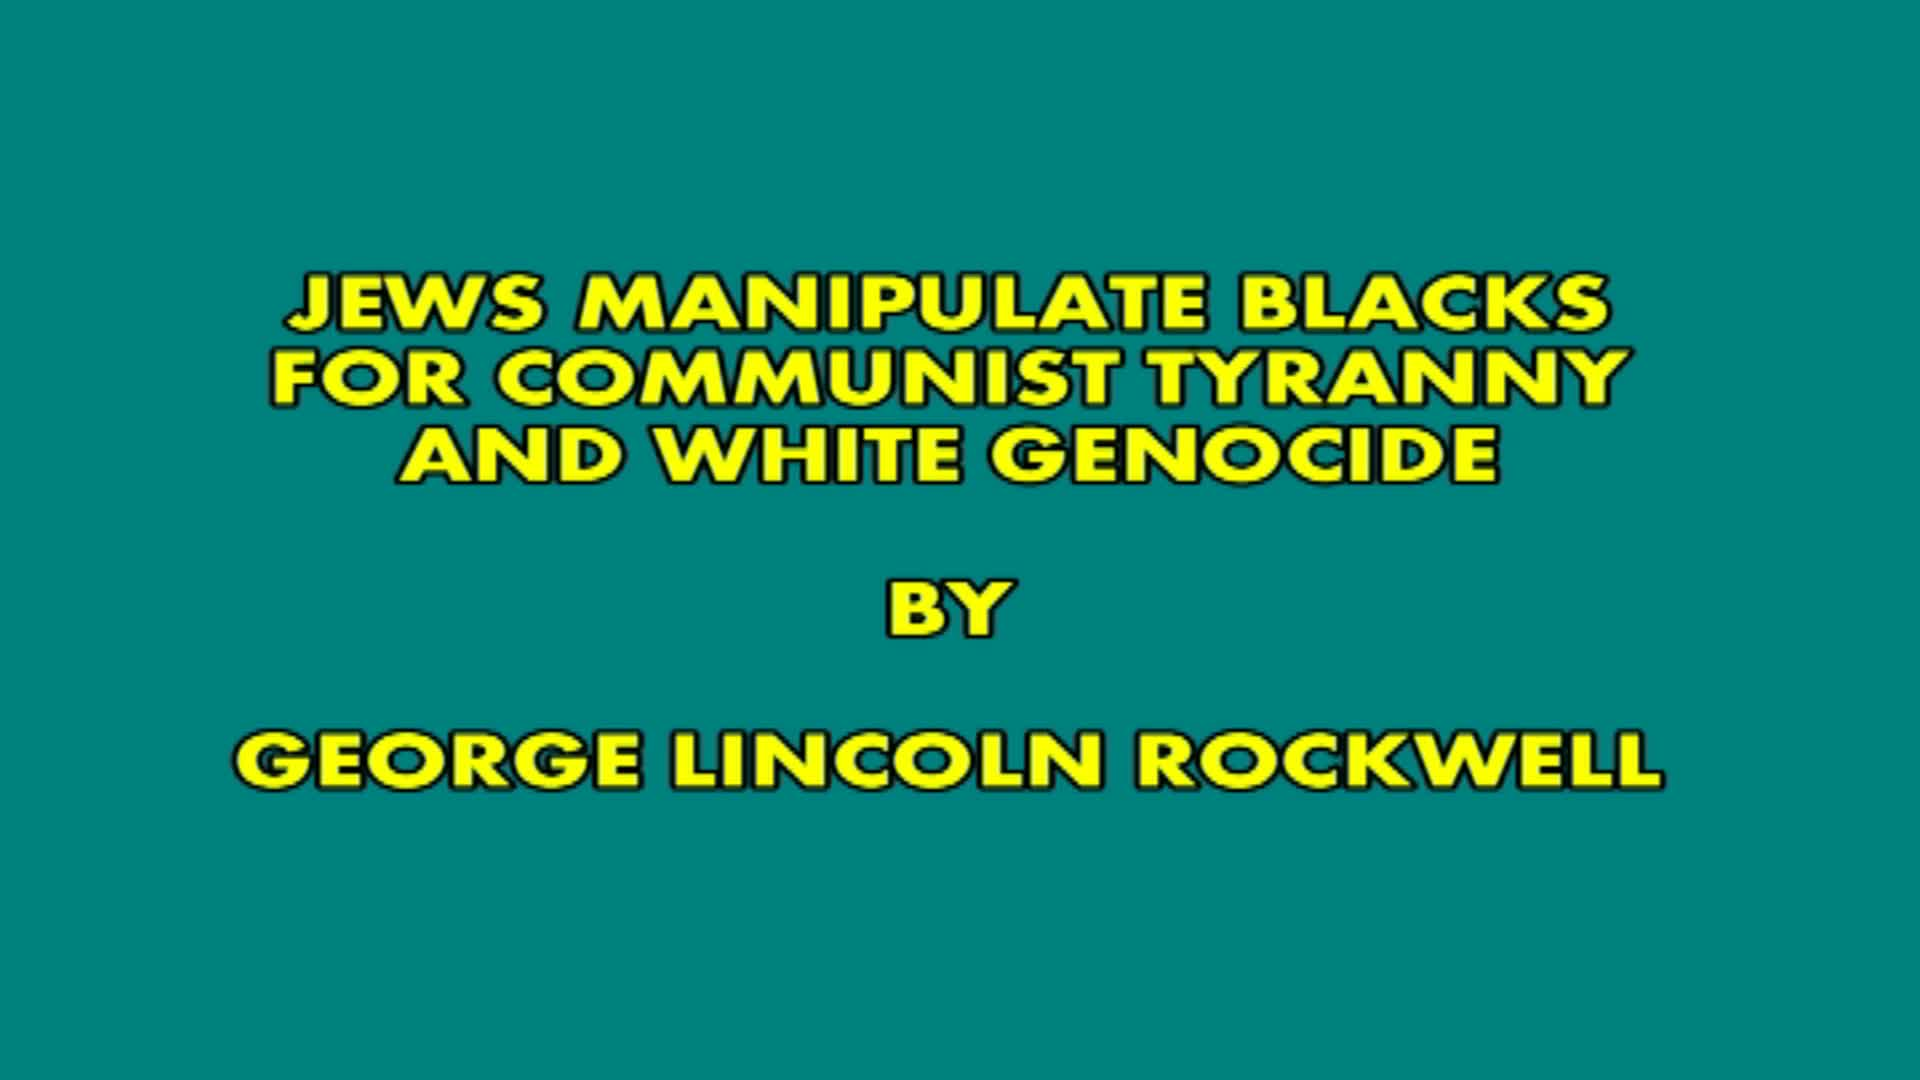 Jews manipulate blacks for communist tyranny and white genocide by George lincoln rockwell